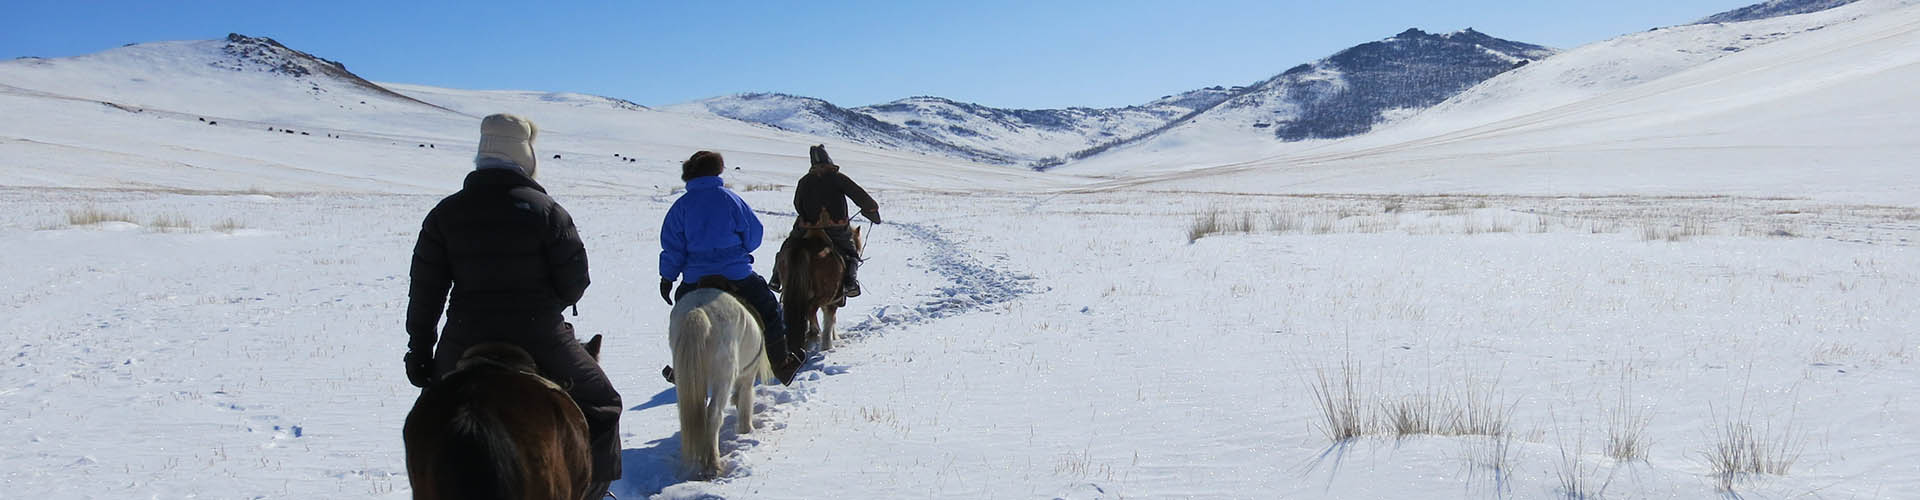 MONGOLIA - Winter horse riding tour in the Orkhon Valley, Bayan Gobi ...